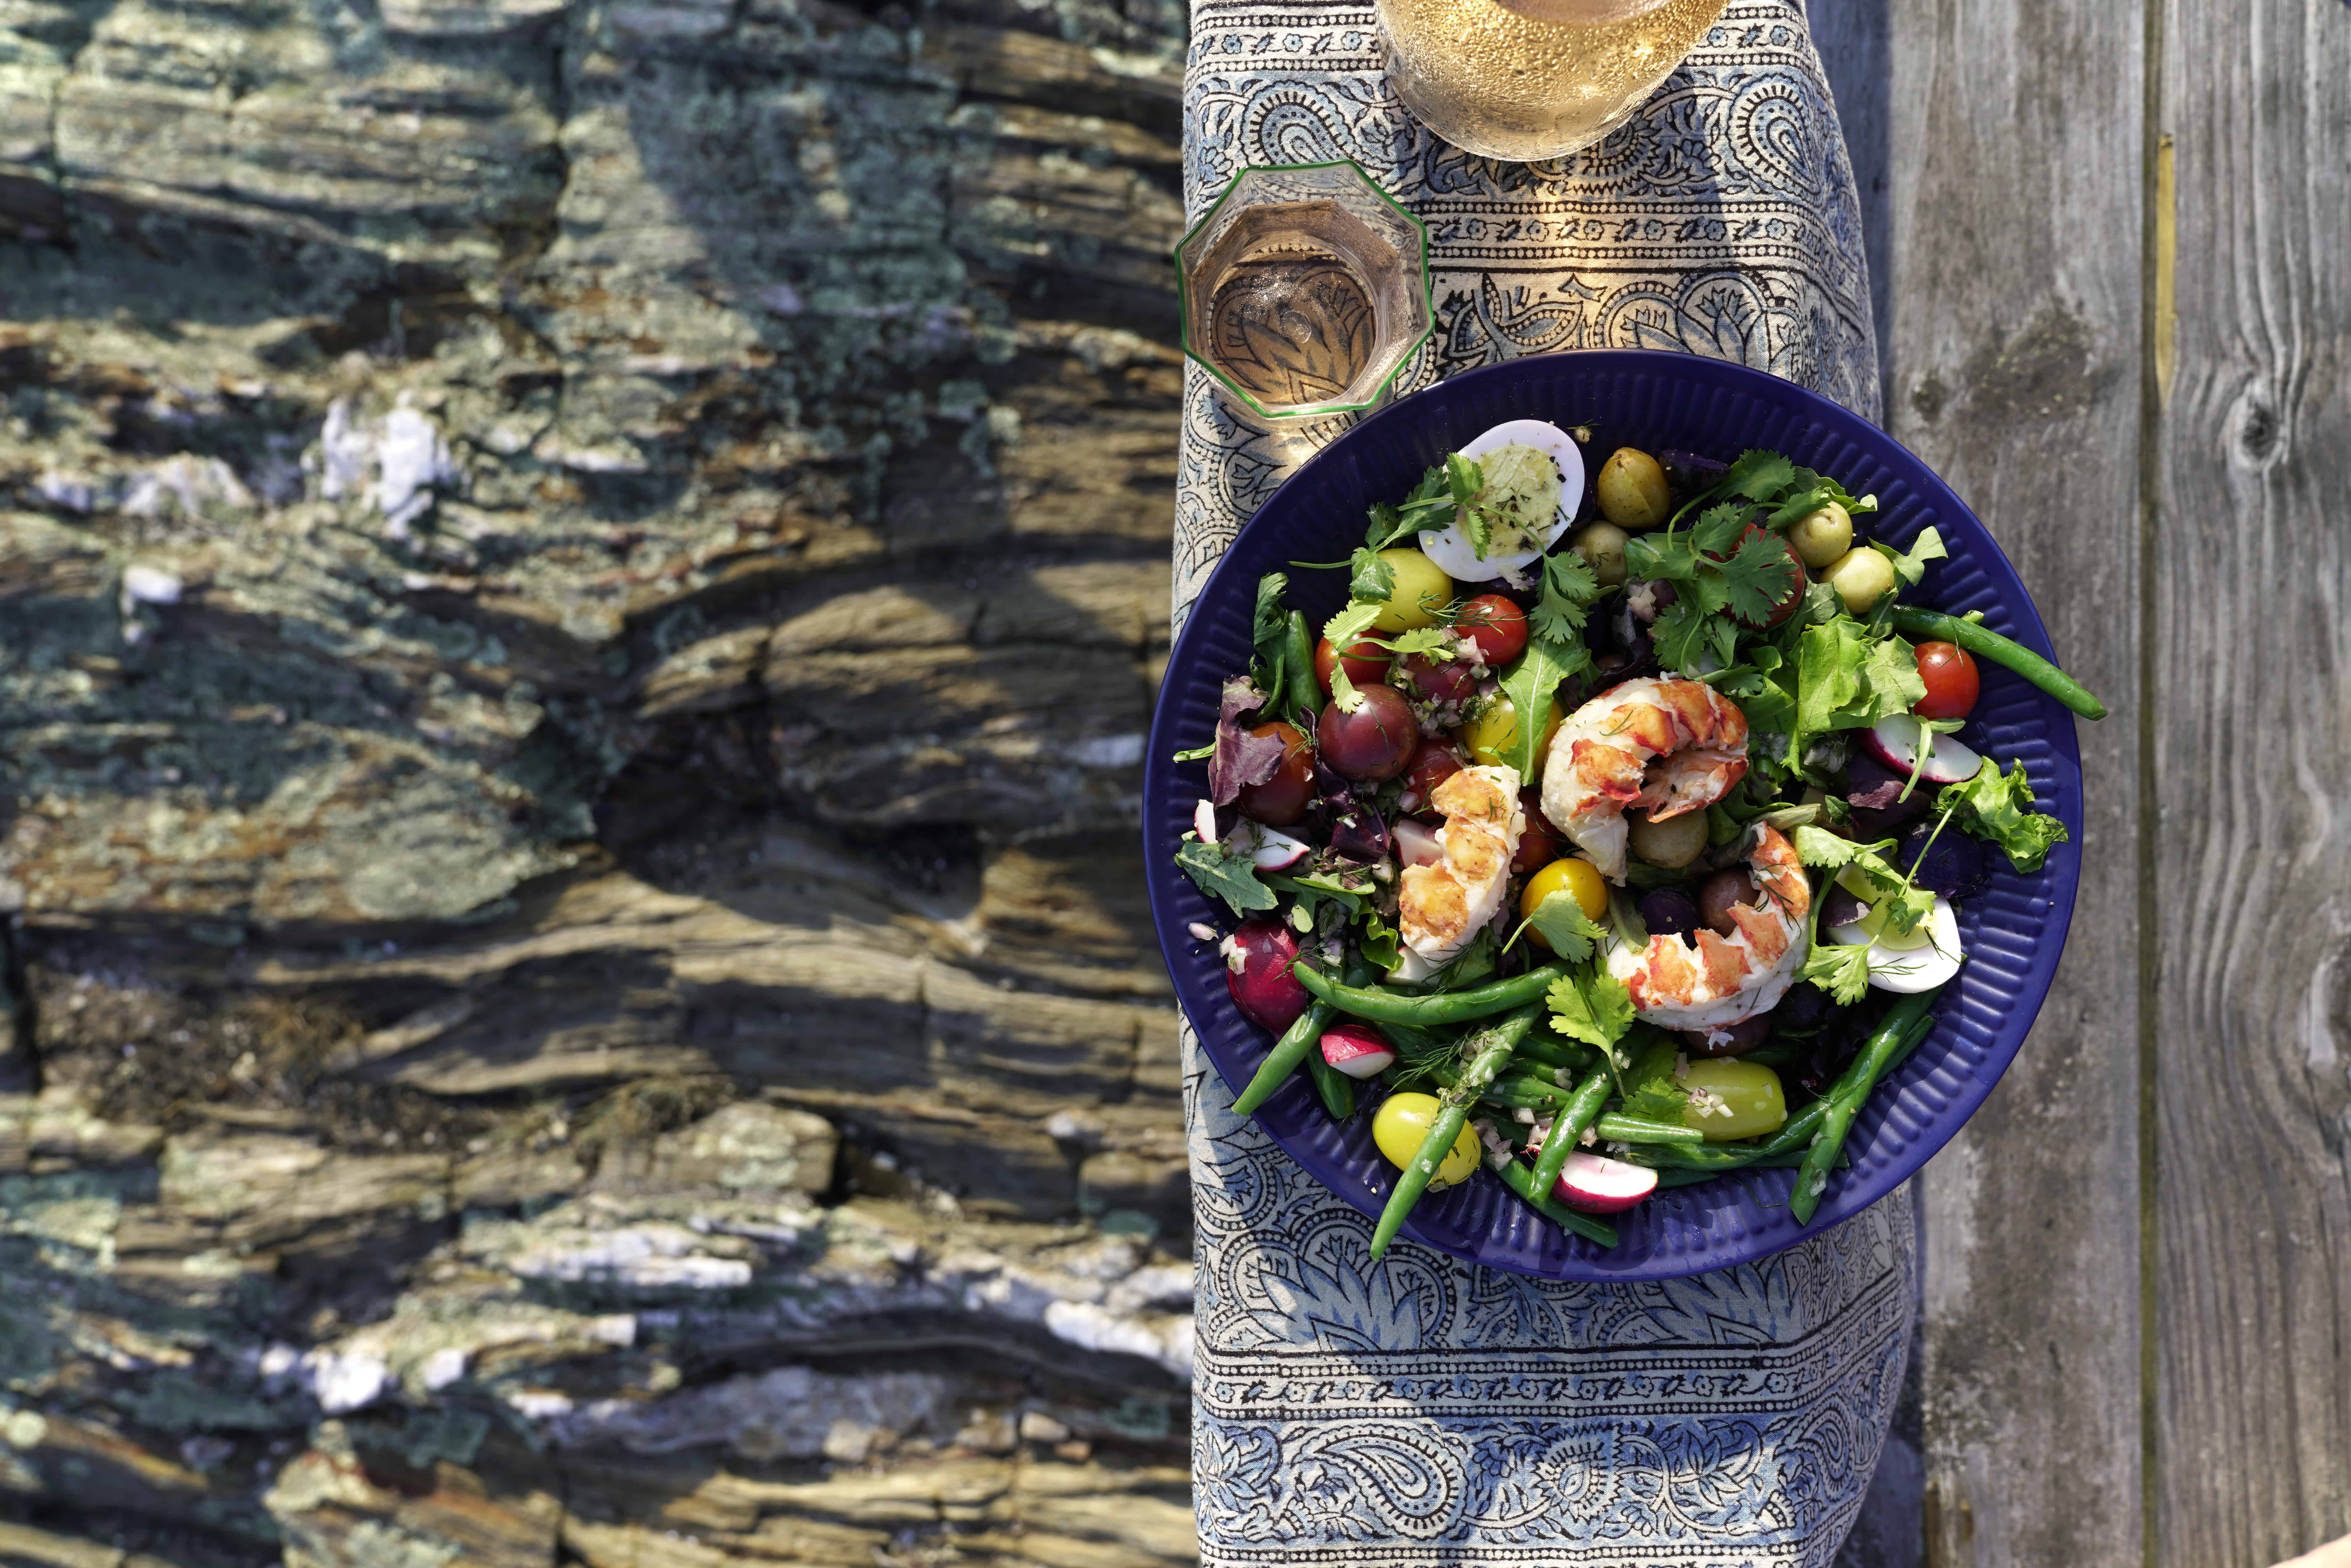 colorful farmers market salad with whole lobster tails on a wooden deck above the rocky coast